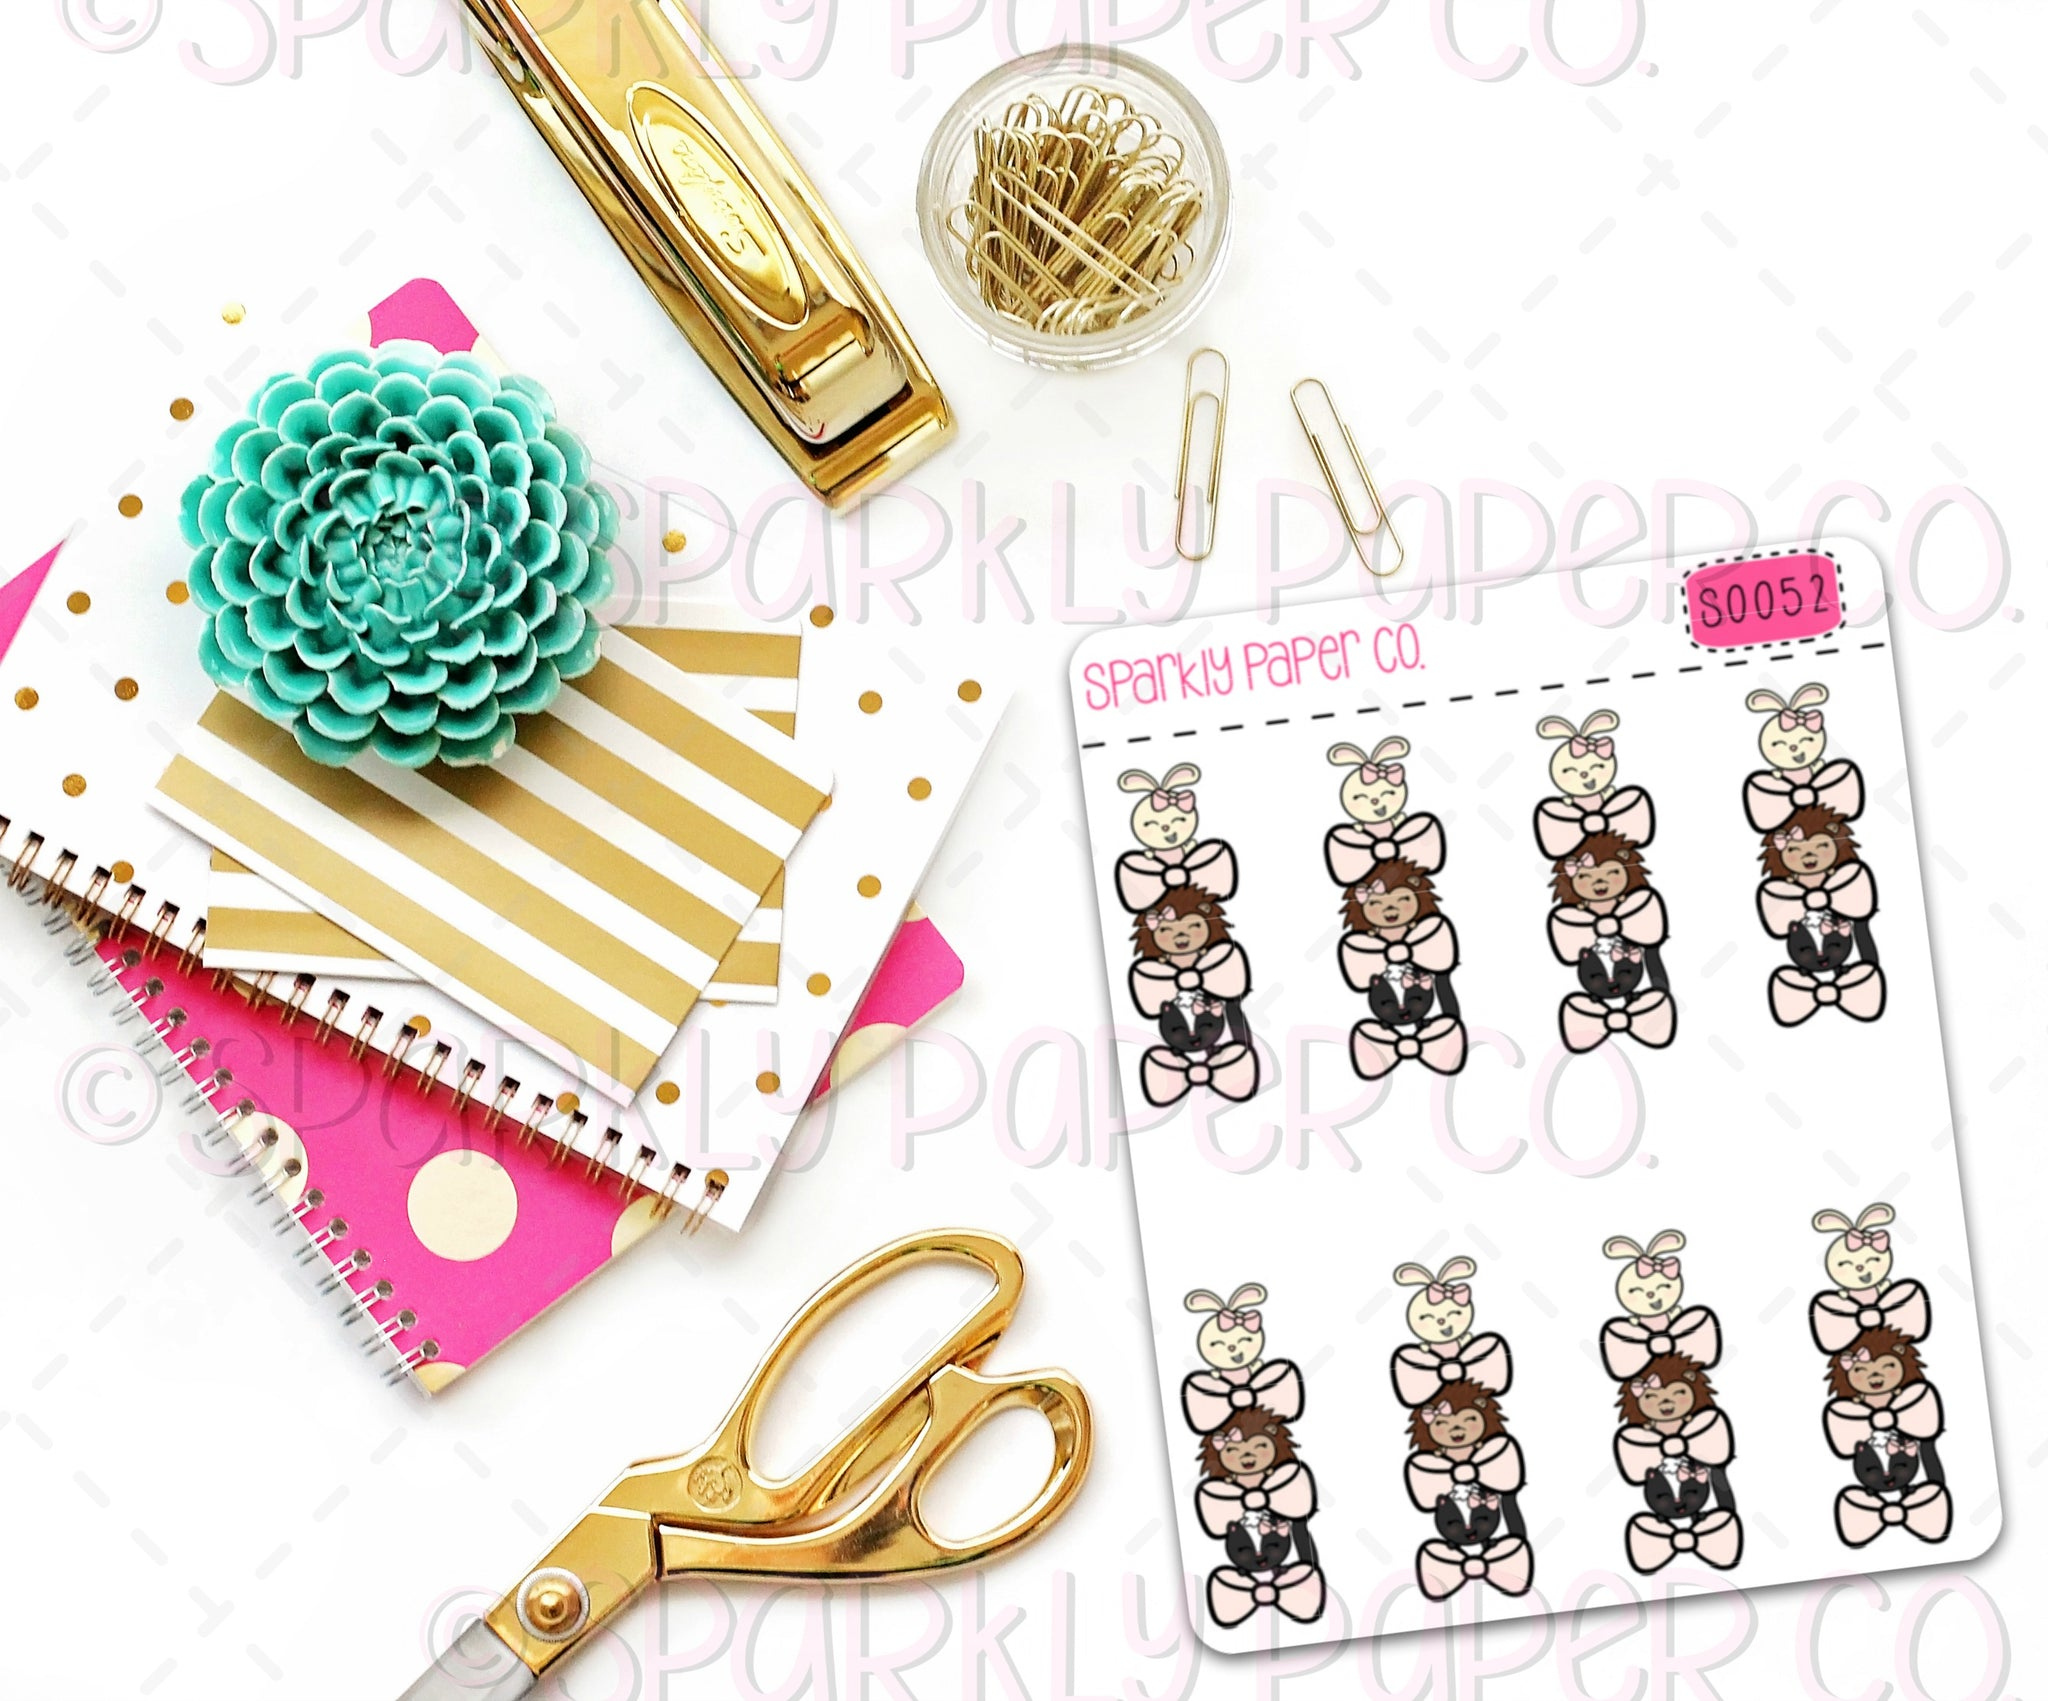 Stacked Bow Critters Planner Stickers (matte removable) S0052